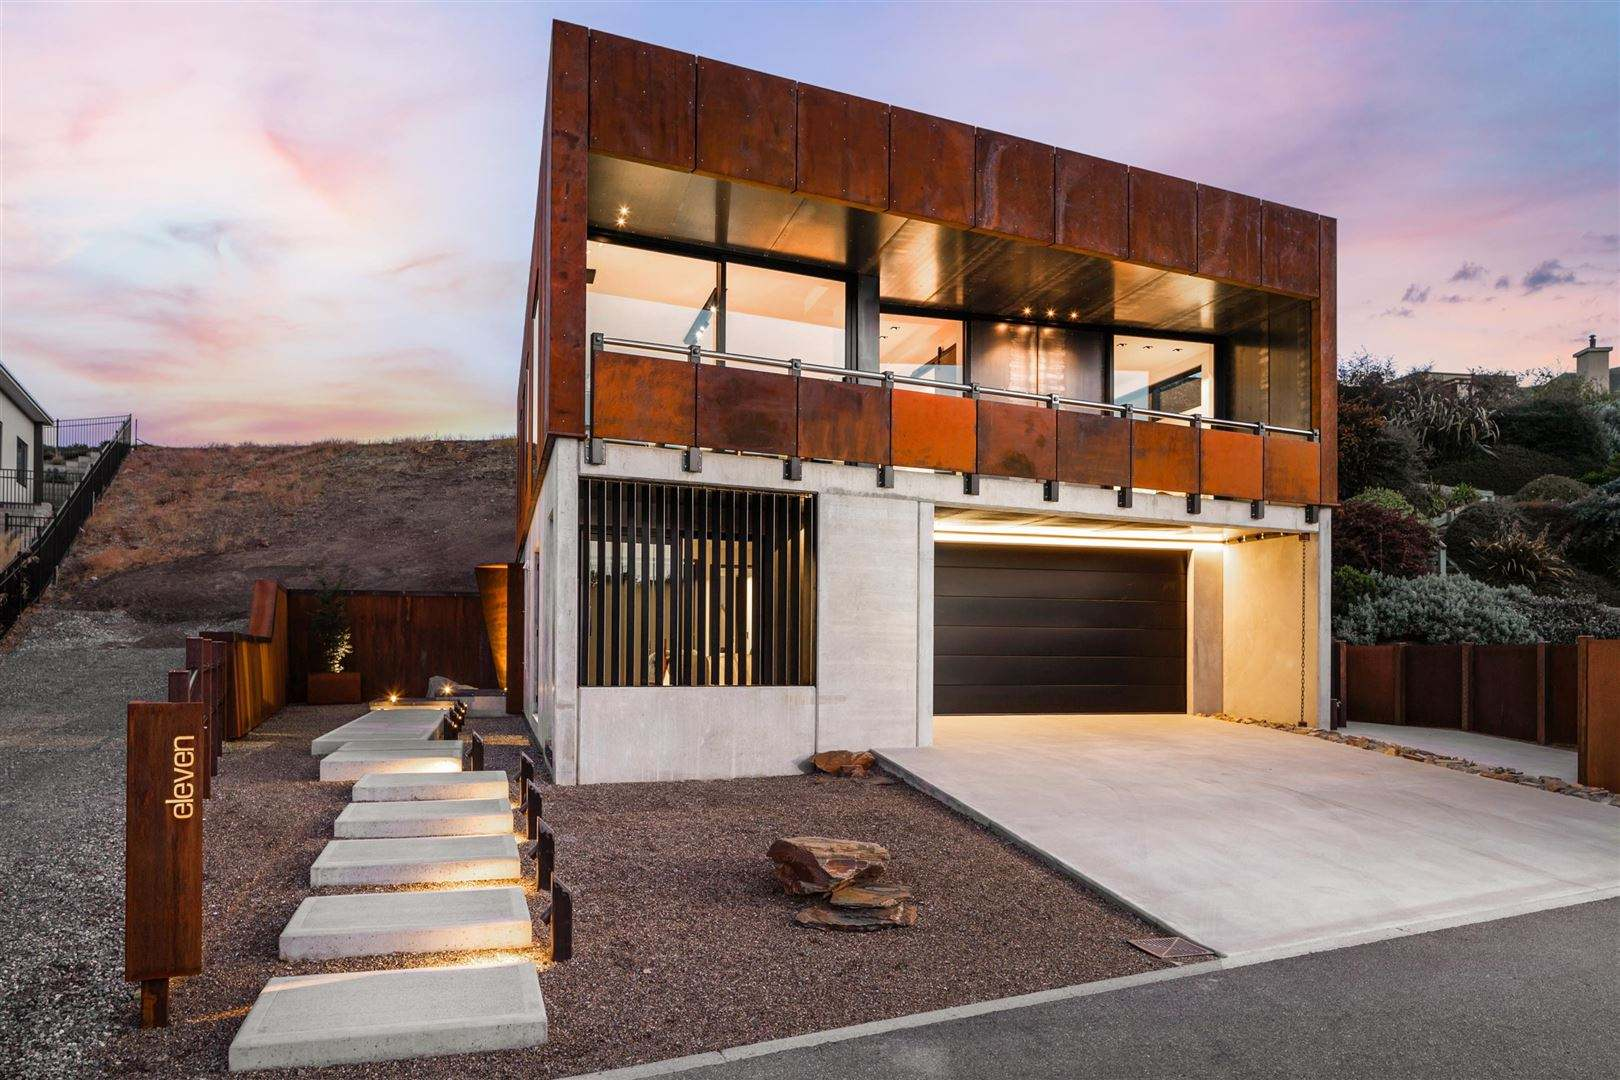 Wanaka 3房 A Striking Blend of Craftsmanship and Location